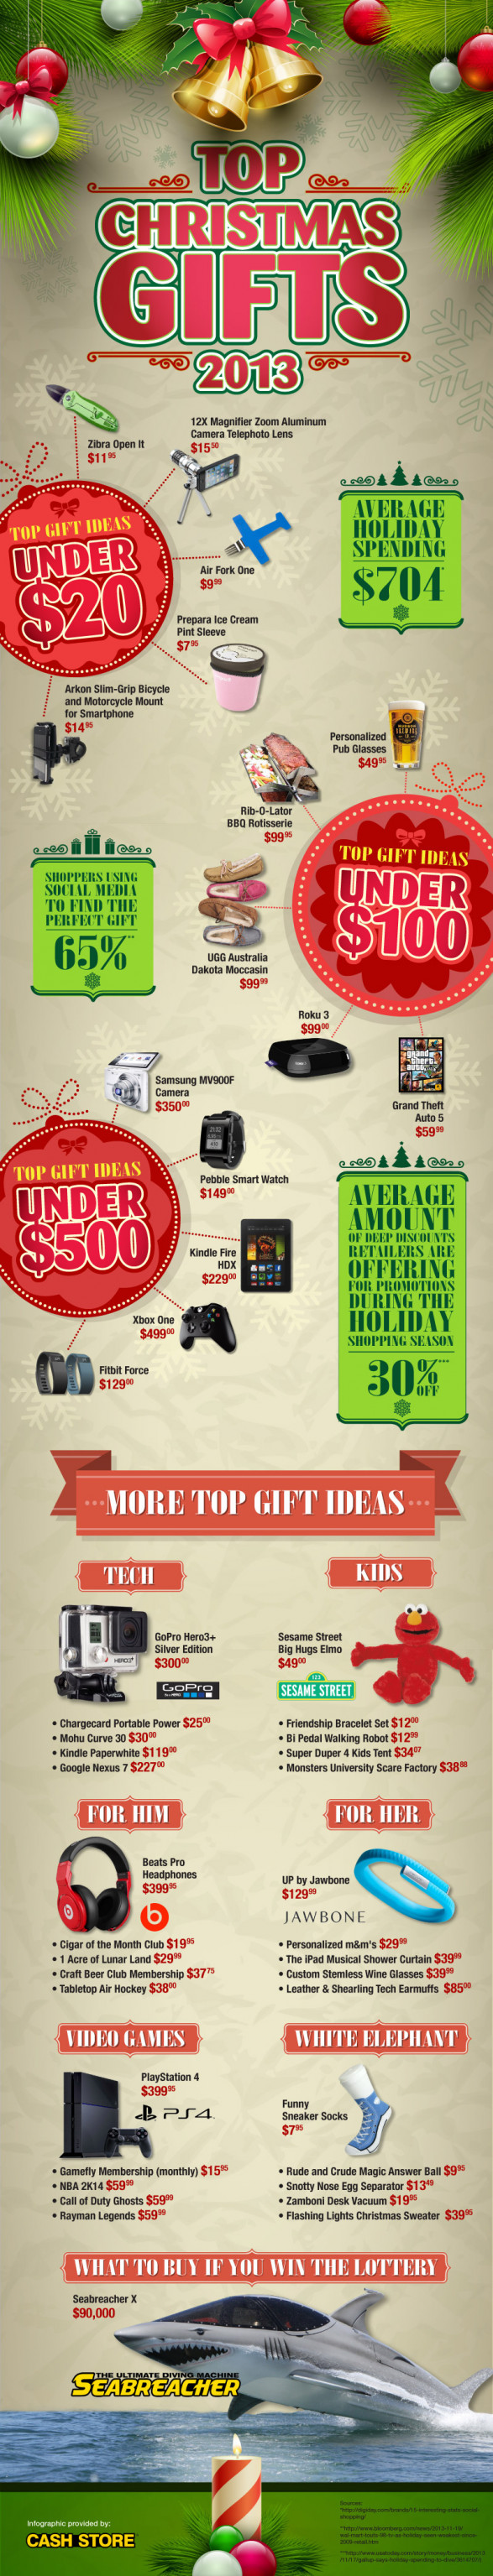 Top Christmas Gifts for 2013